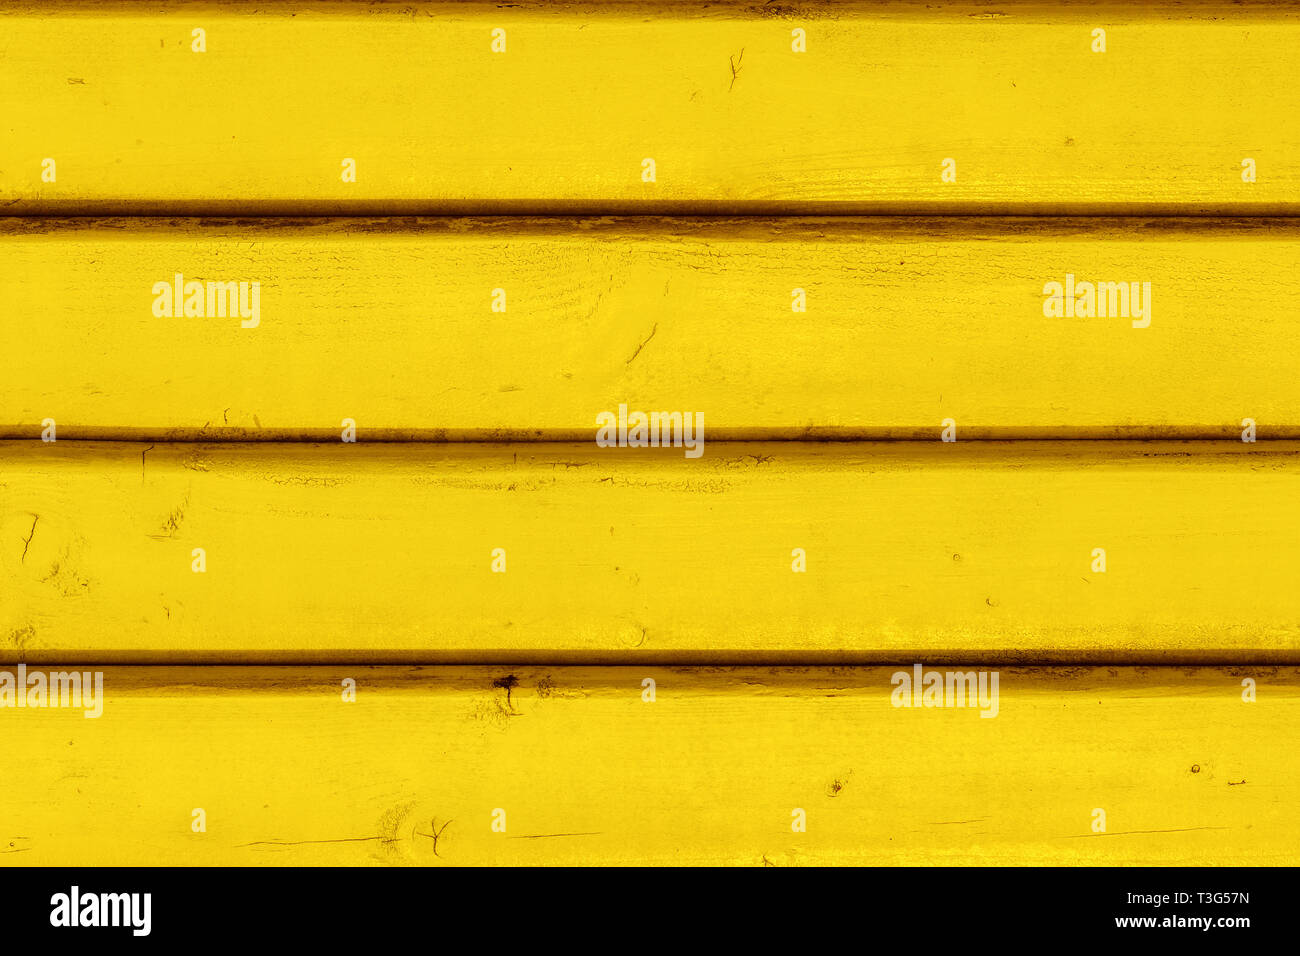 Yellow vintage wooden boards in overlap cladding pattern, front view as copy space or graphic design background - Stock Image